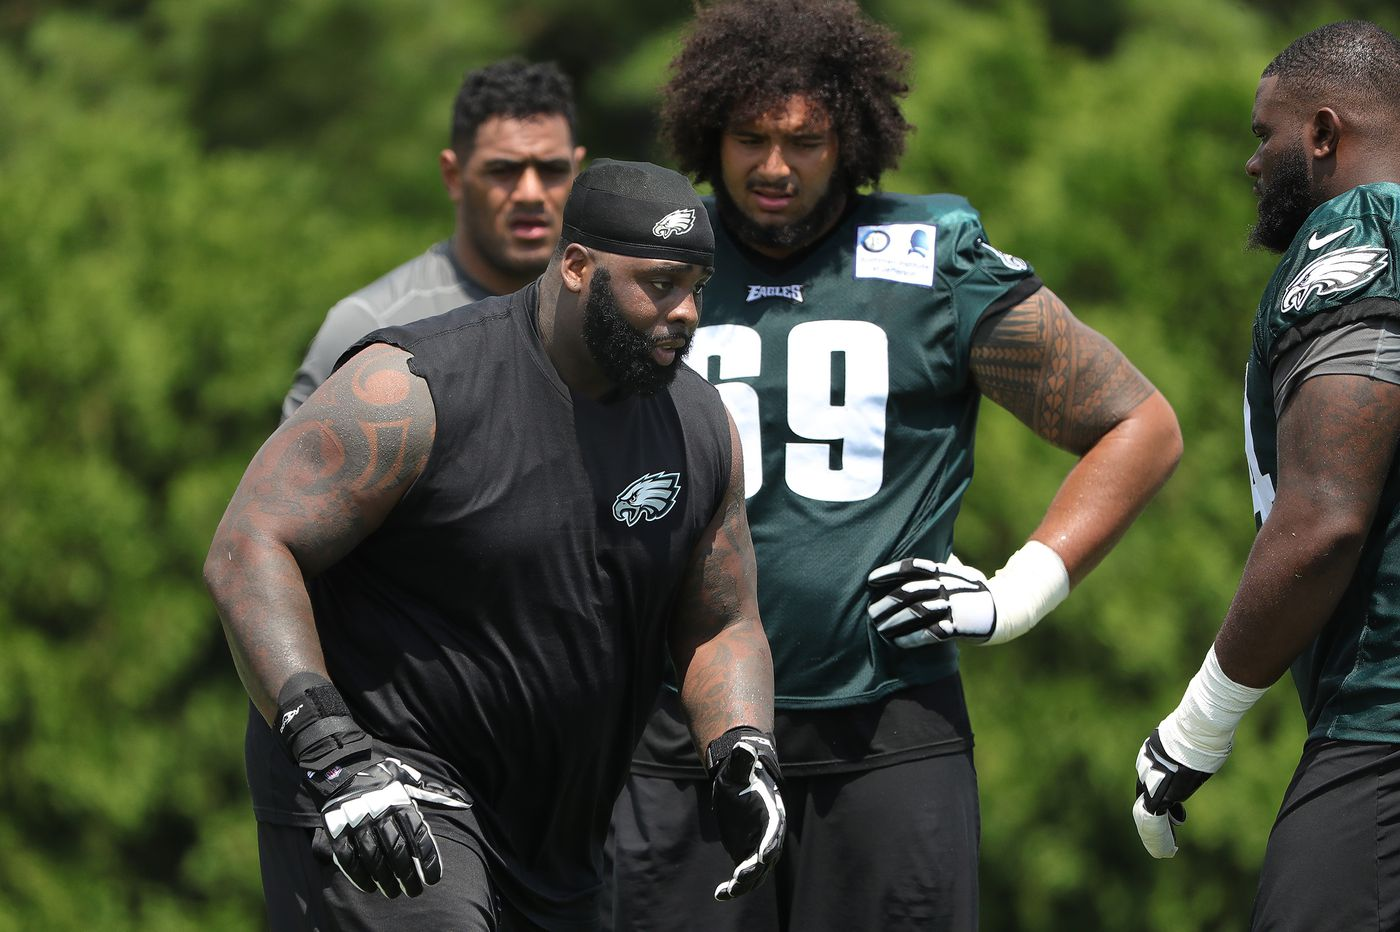 At 36, retirement is the furthest thing from Jason Peters' mind